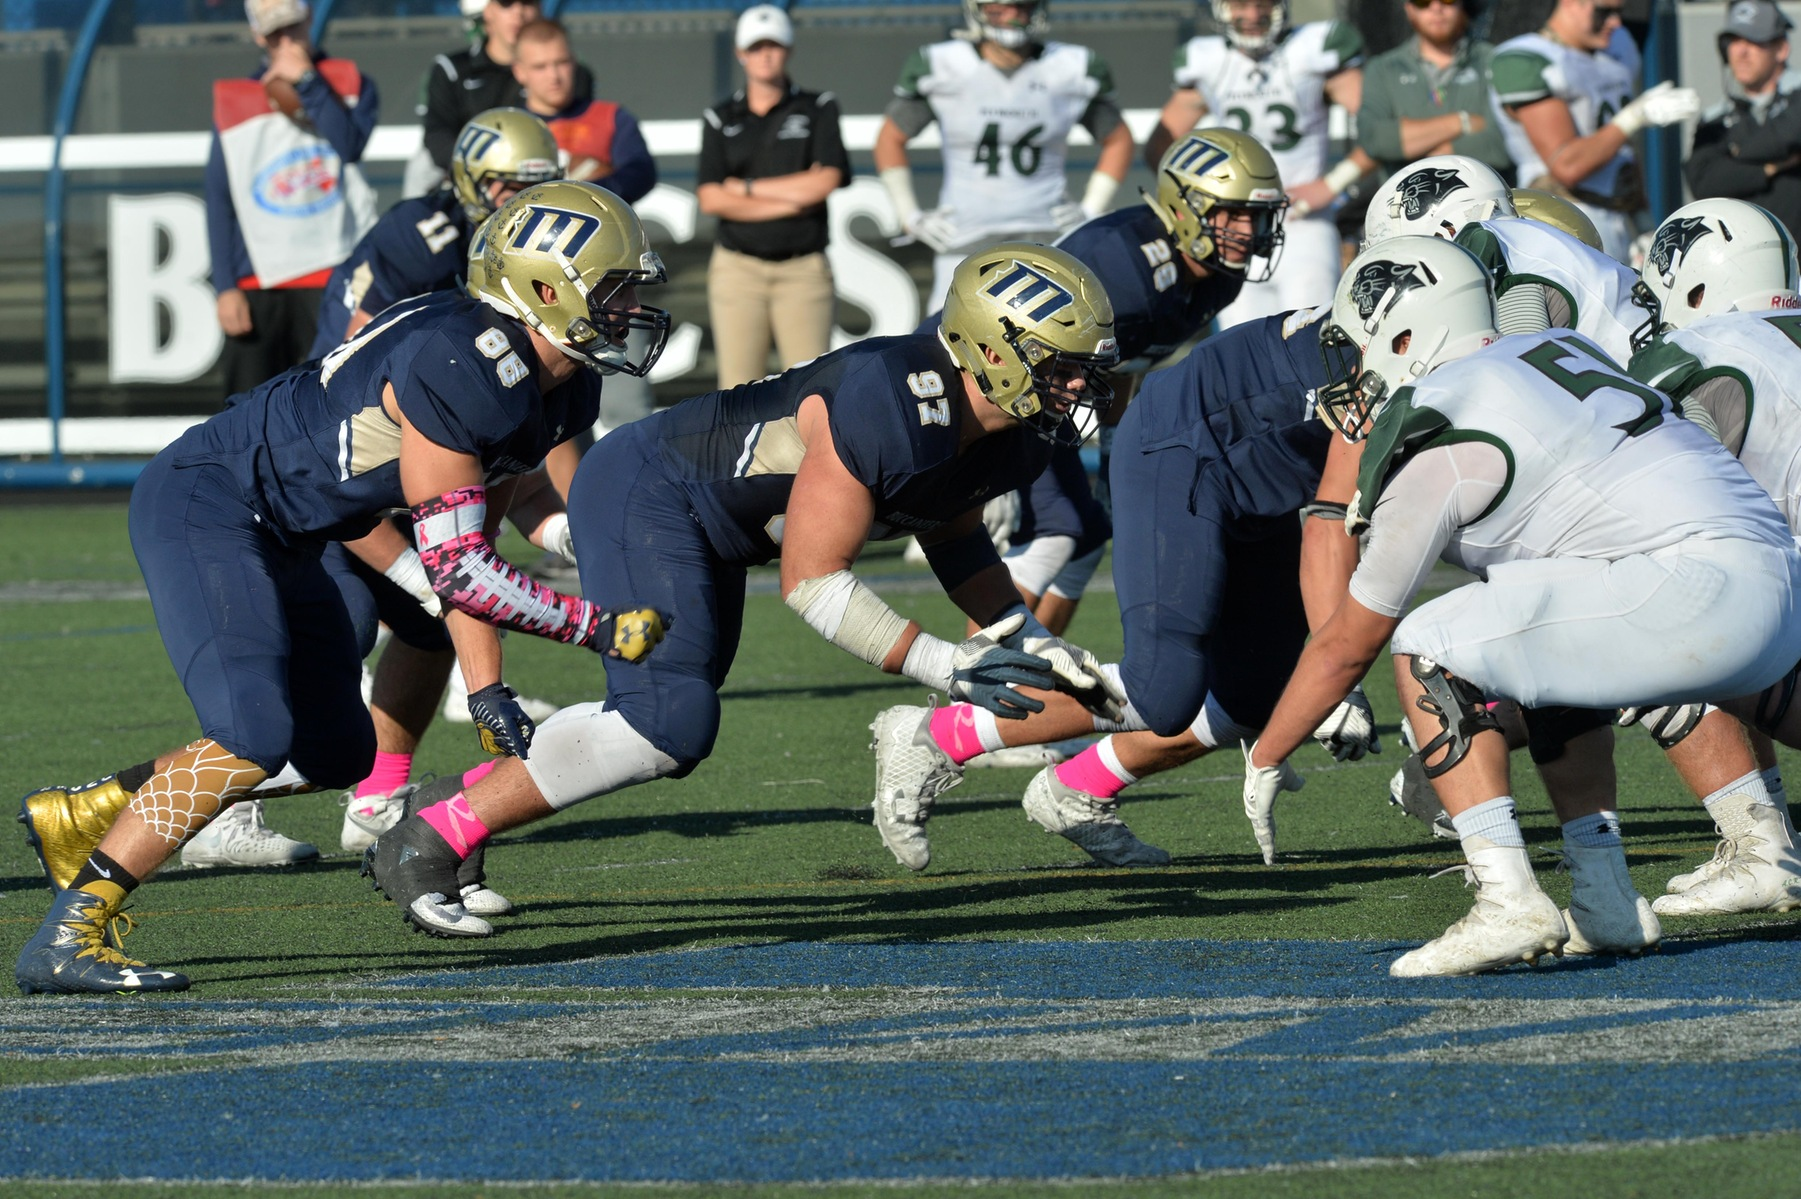 Buc Defense Strong in Loss to Colonials